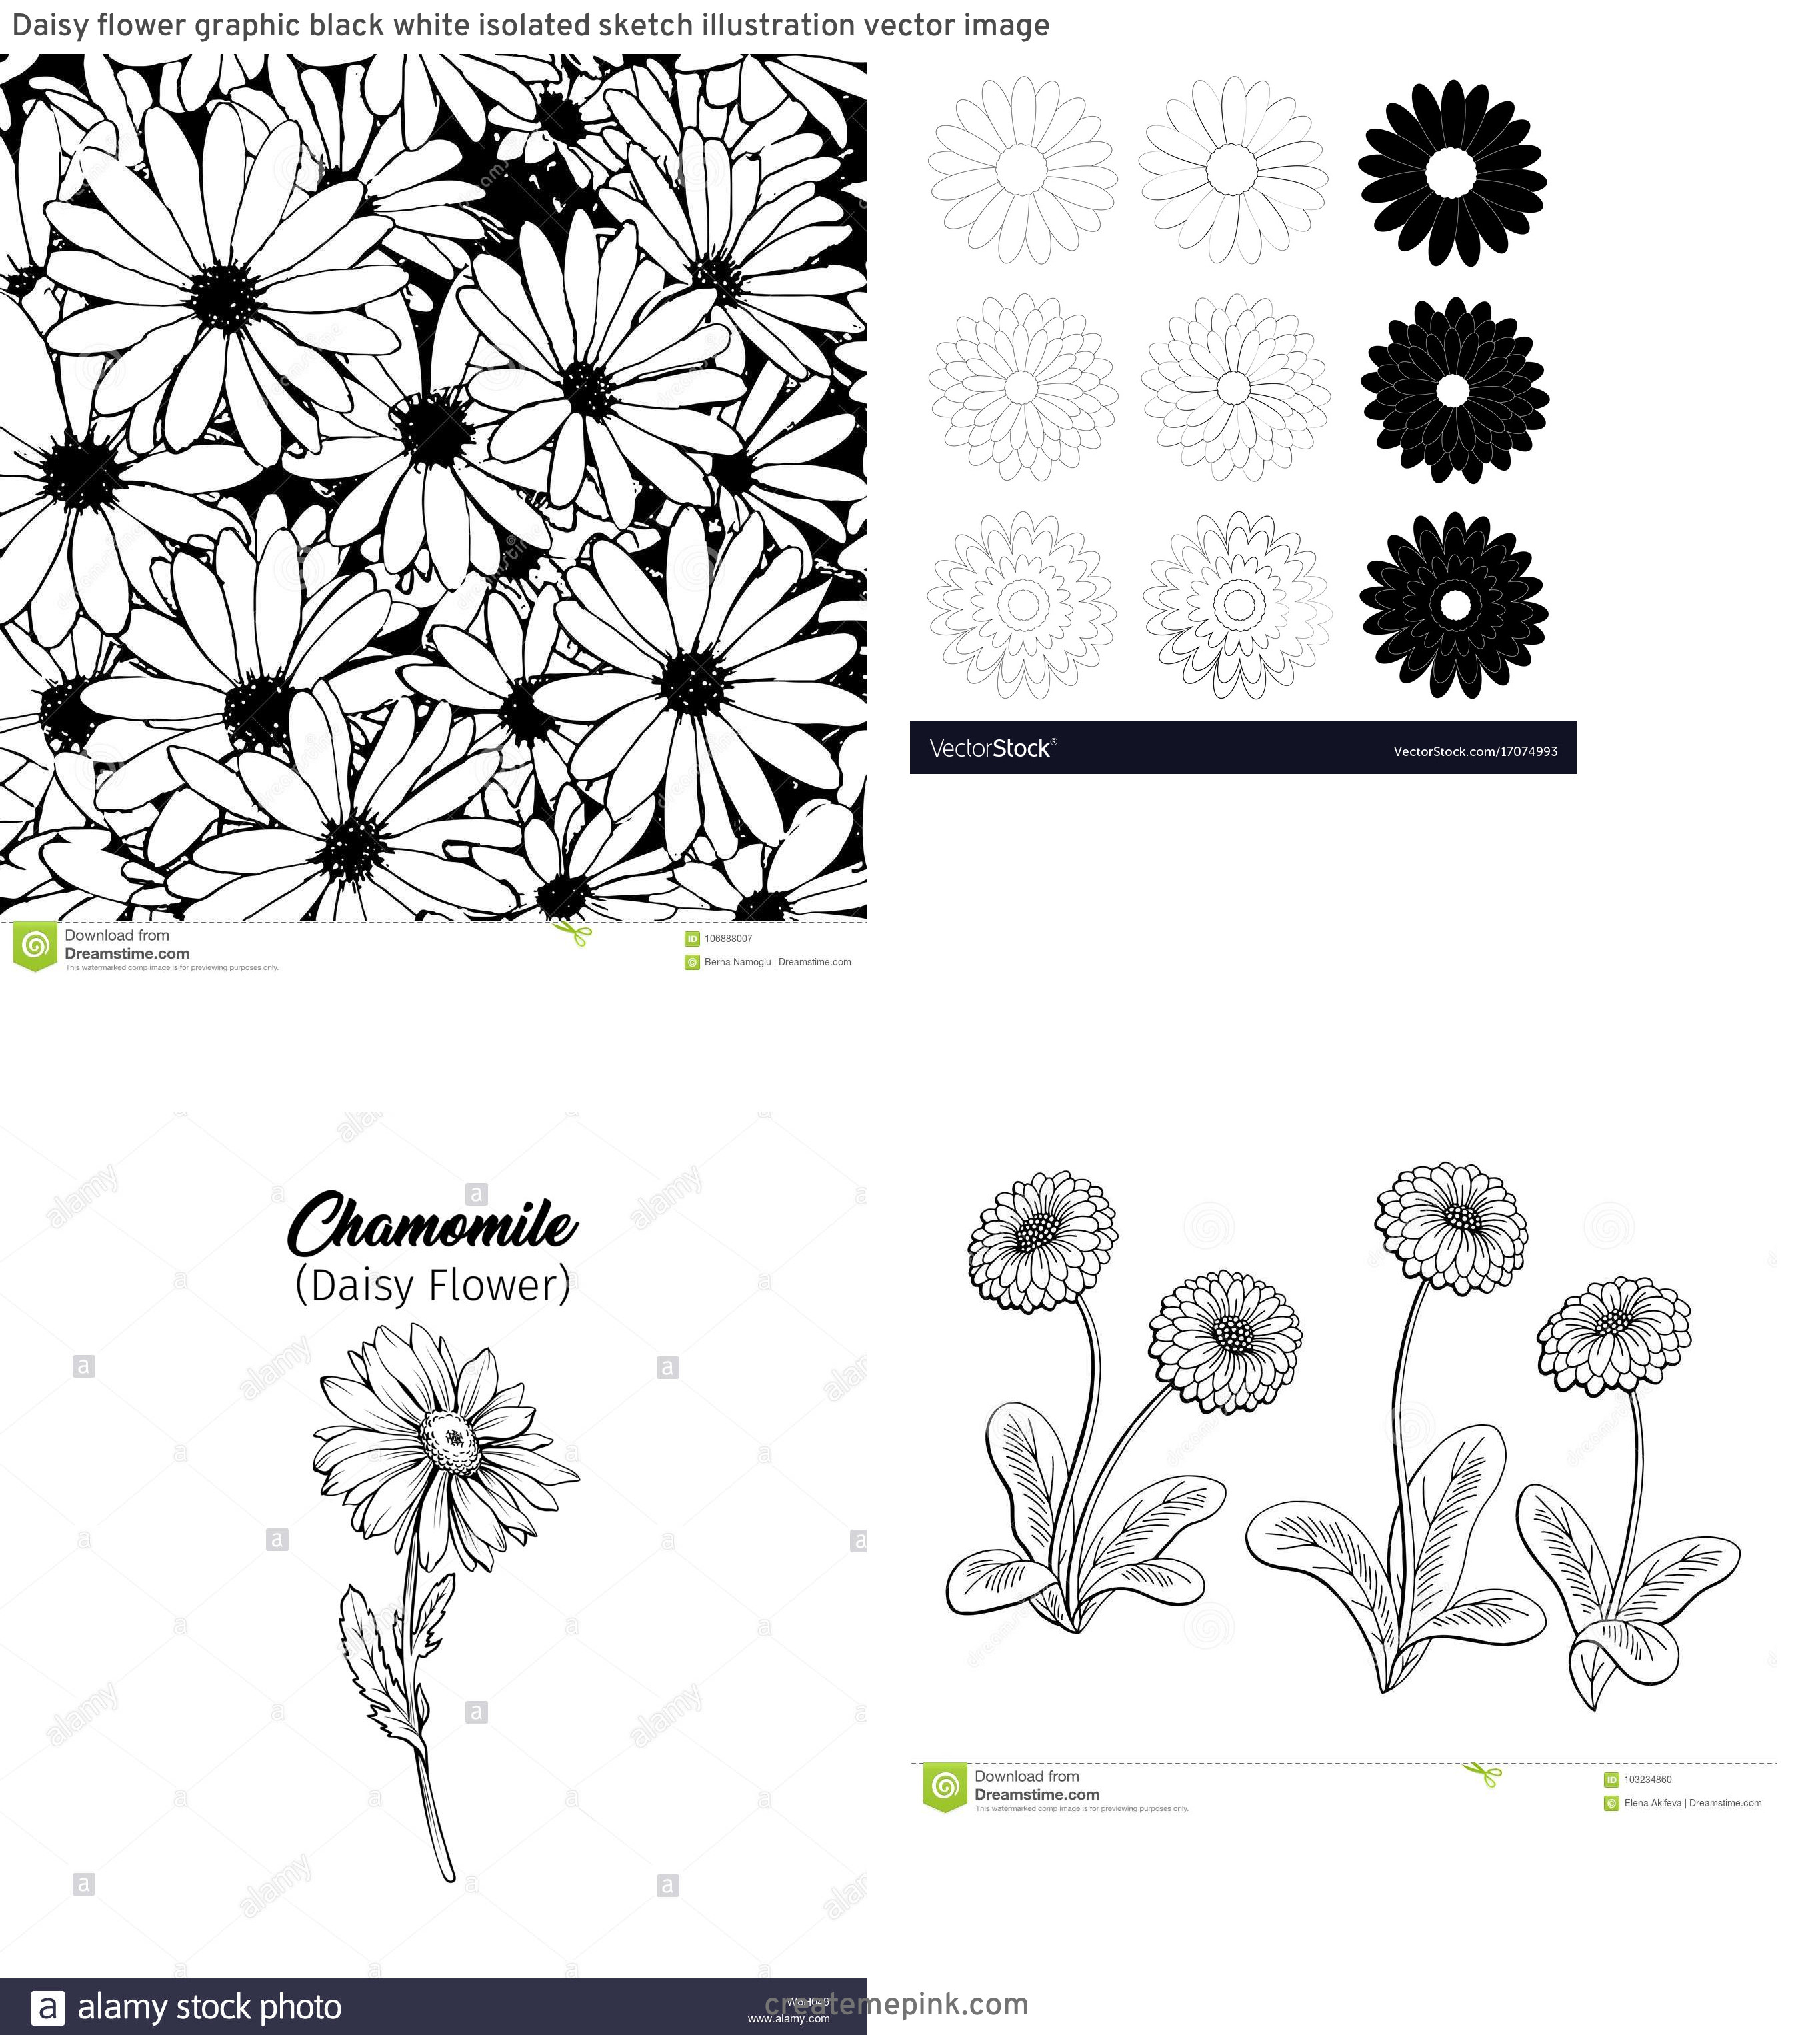 Flower Daisey Black Vector Art: Daisy Flower Graphic Black White Isolated Sketch Illustration Vector Image